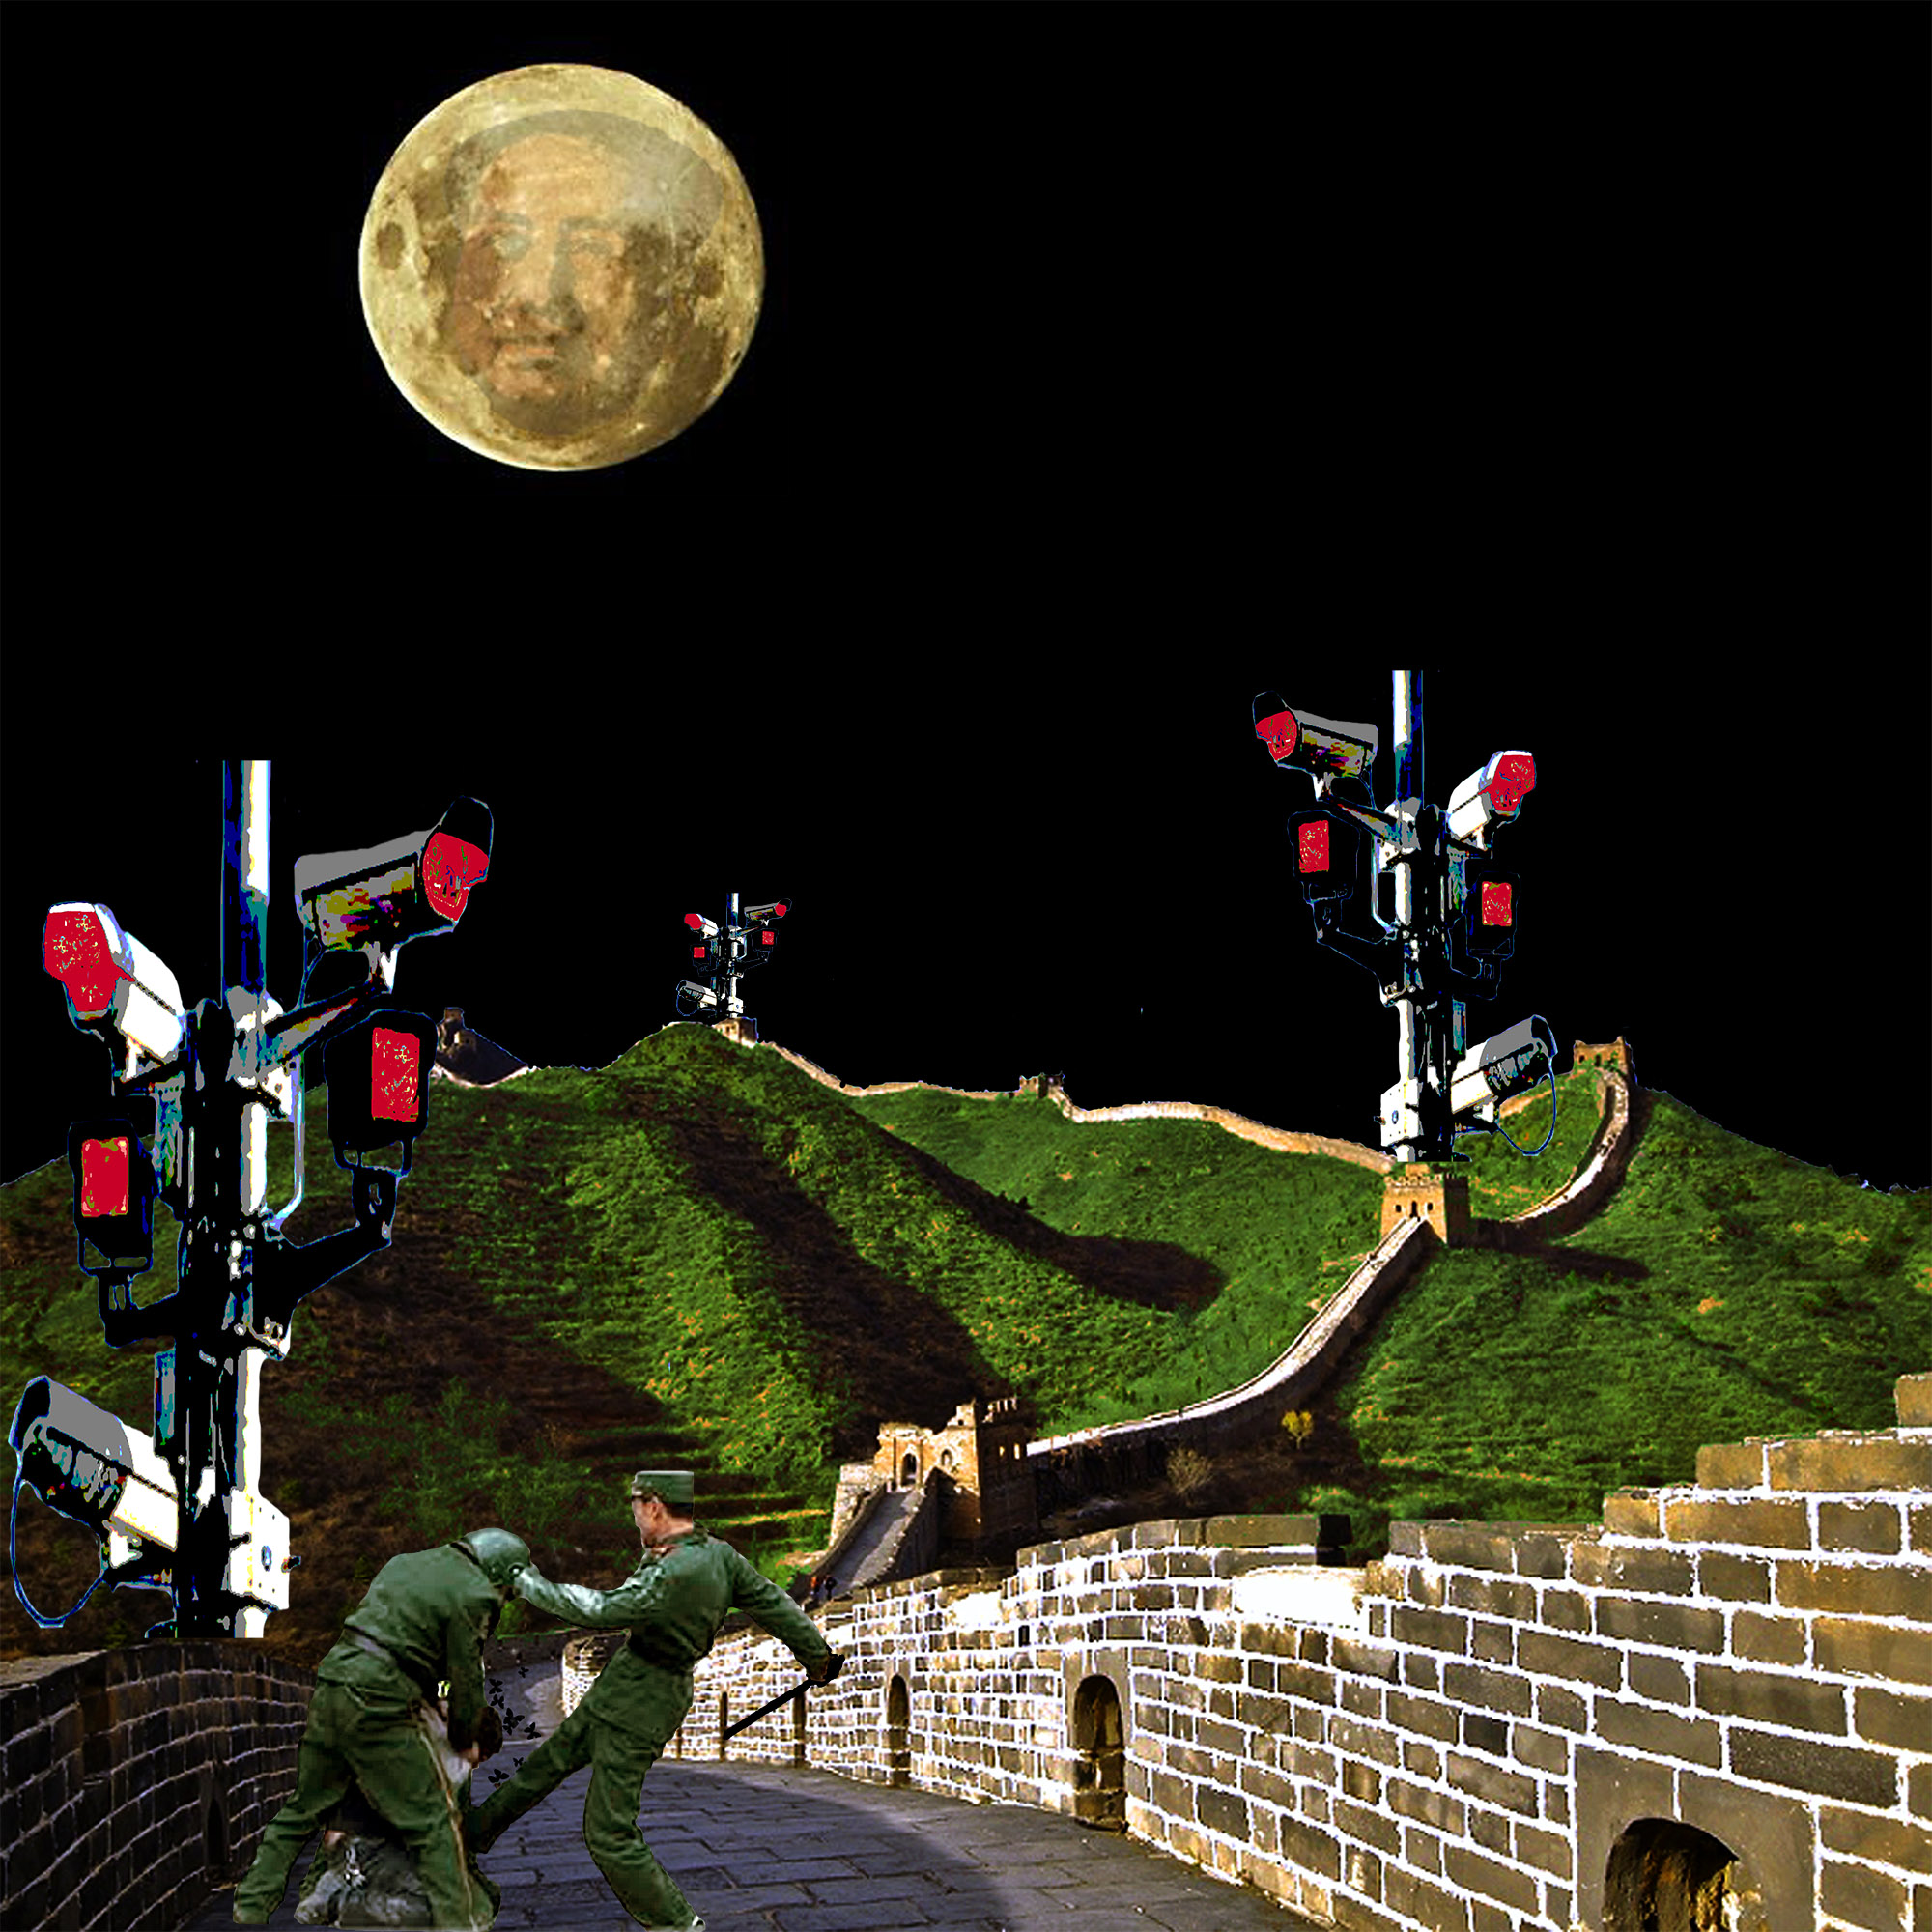 Mao in The Moon